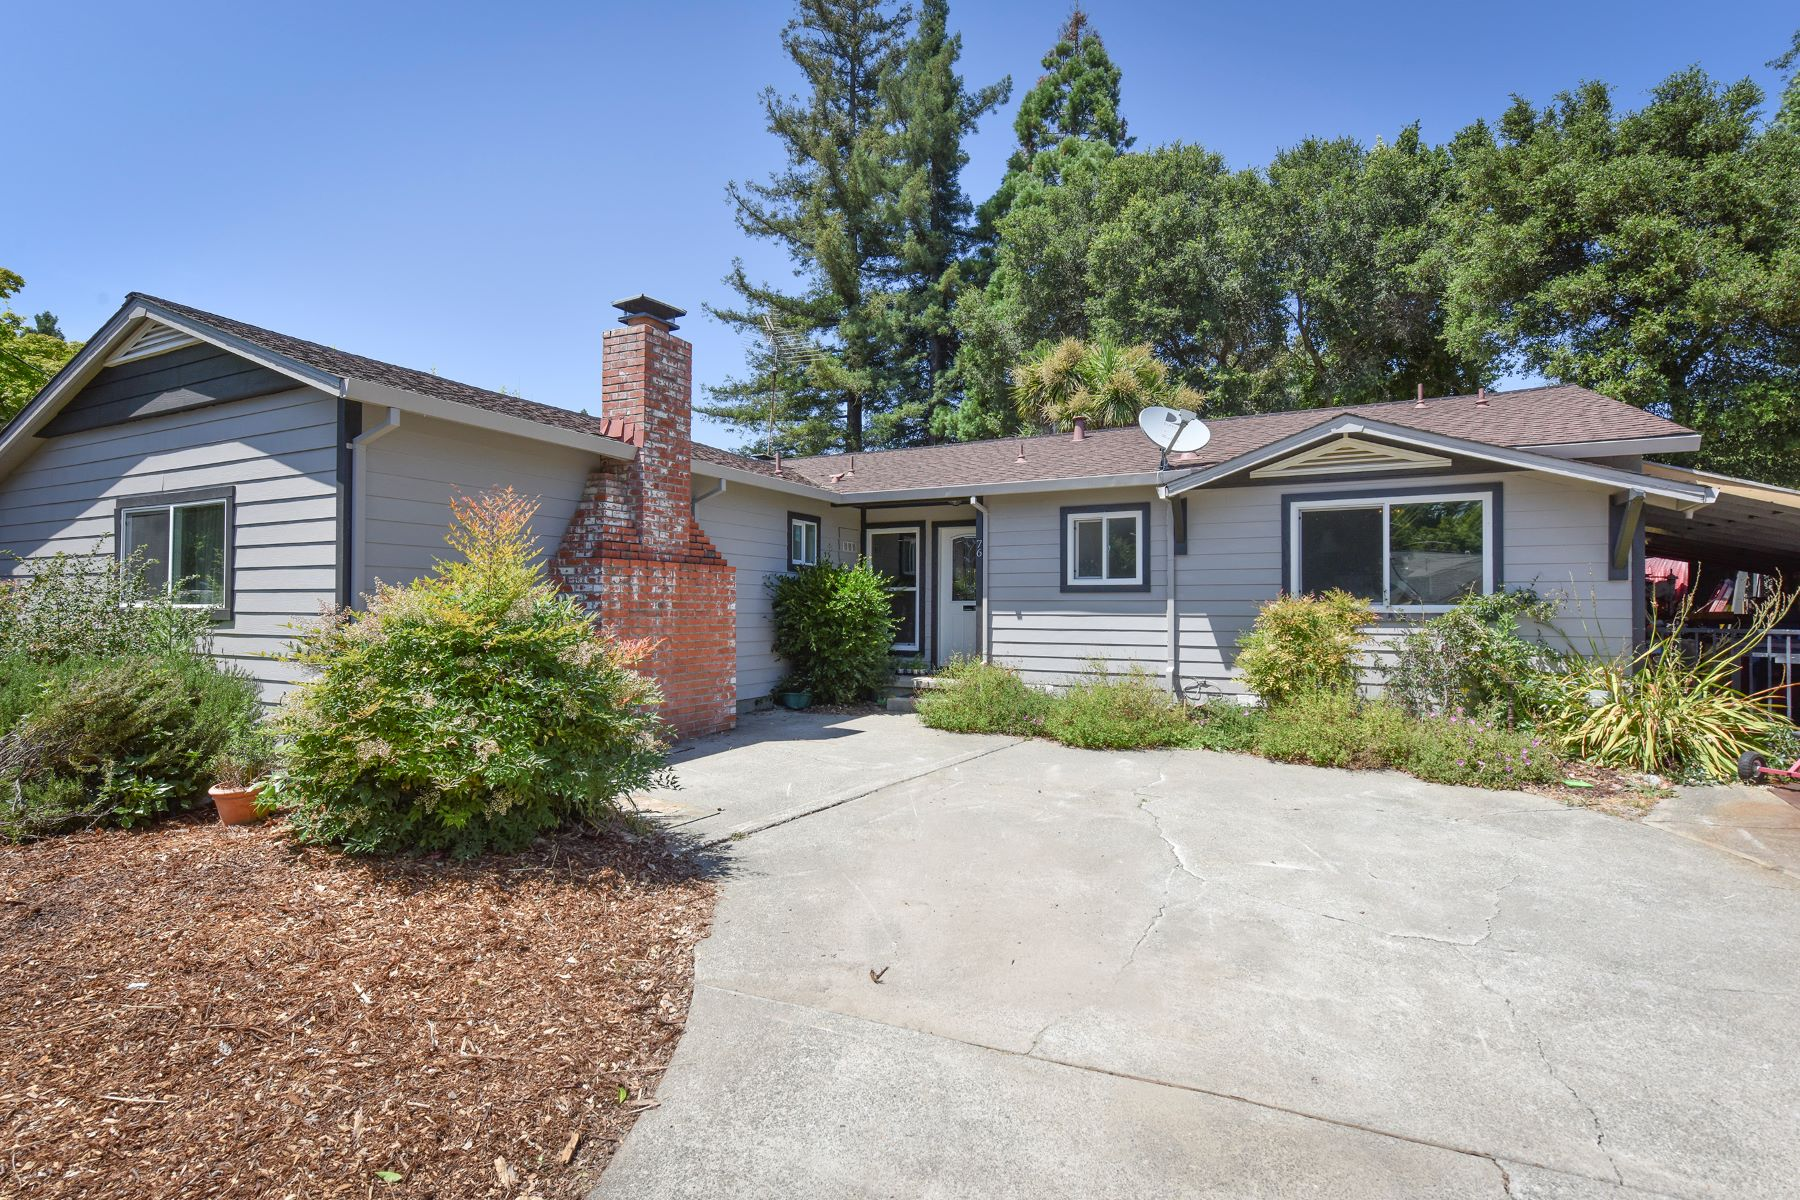 Single Family Home for Sale at An Inviting Home with Elegant Upgrades 76 Harvard Lane Napa, California 94558 United States